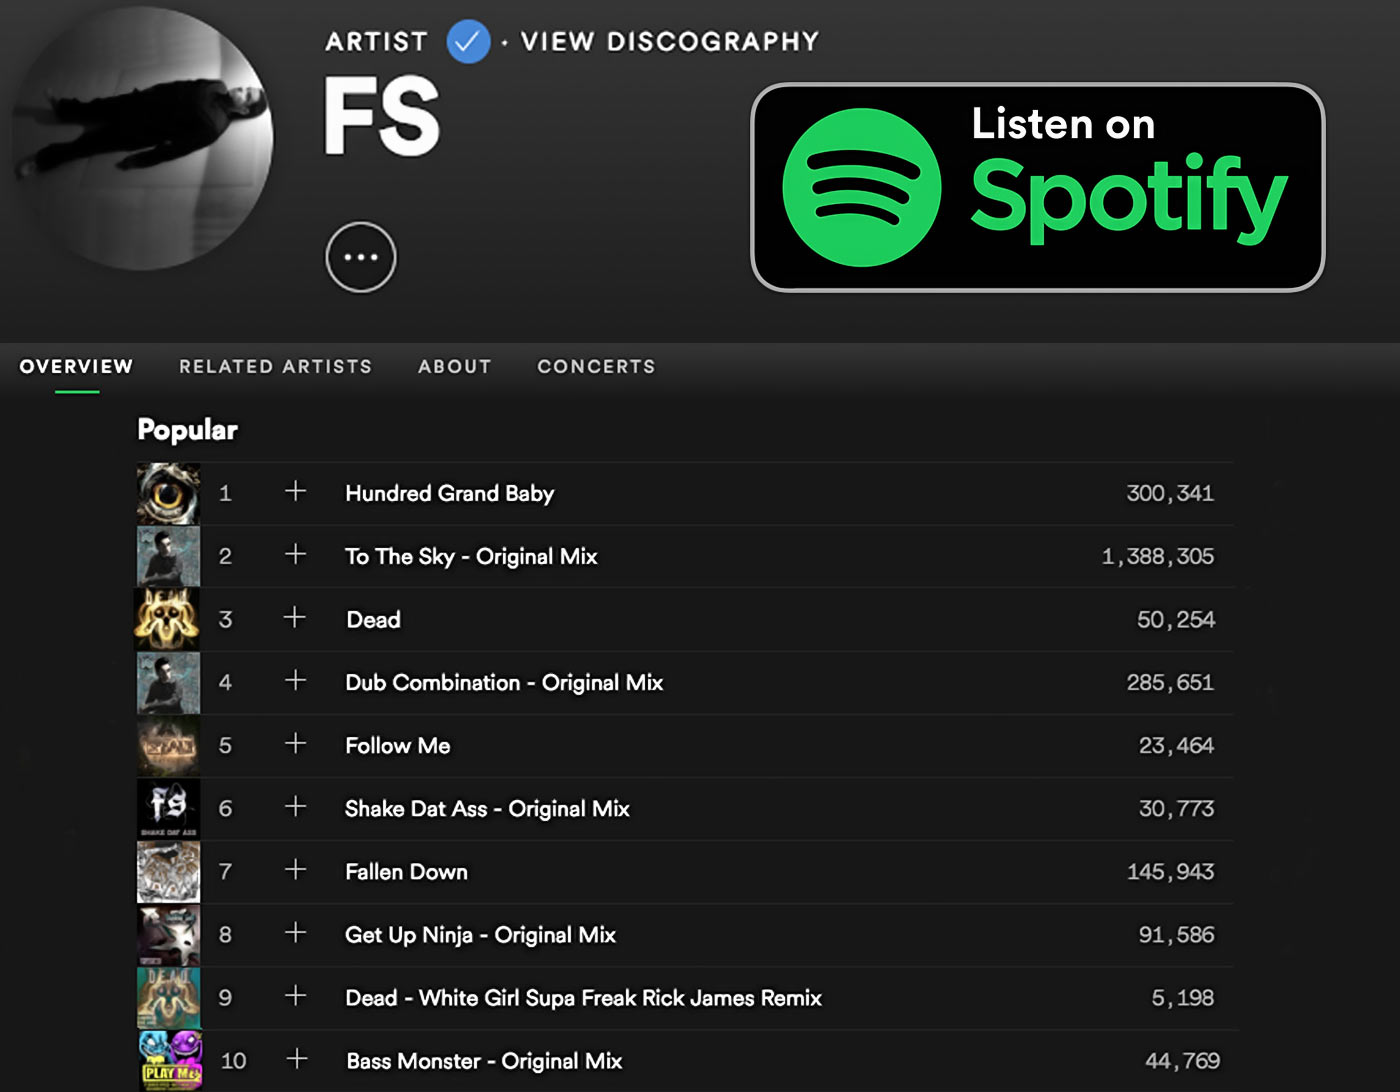 FS hits over 2.7 million streams on Spotify!